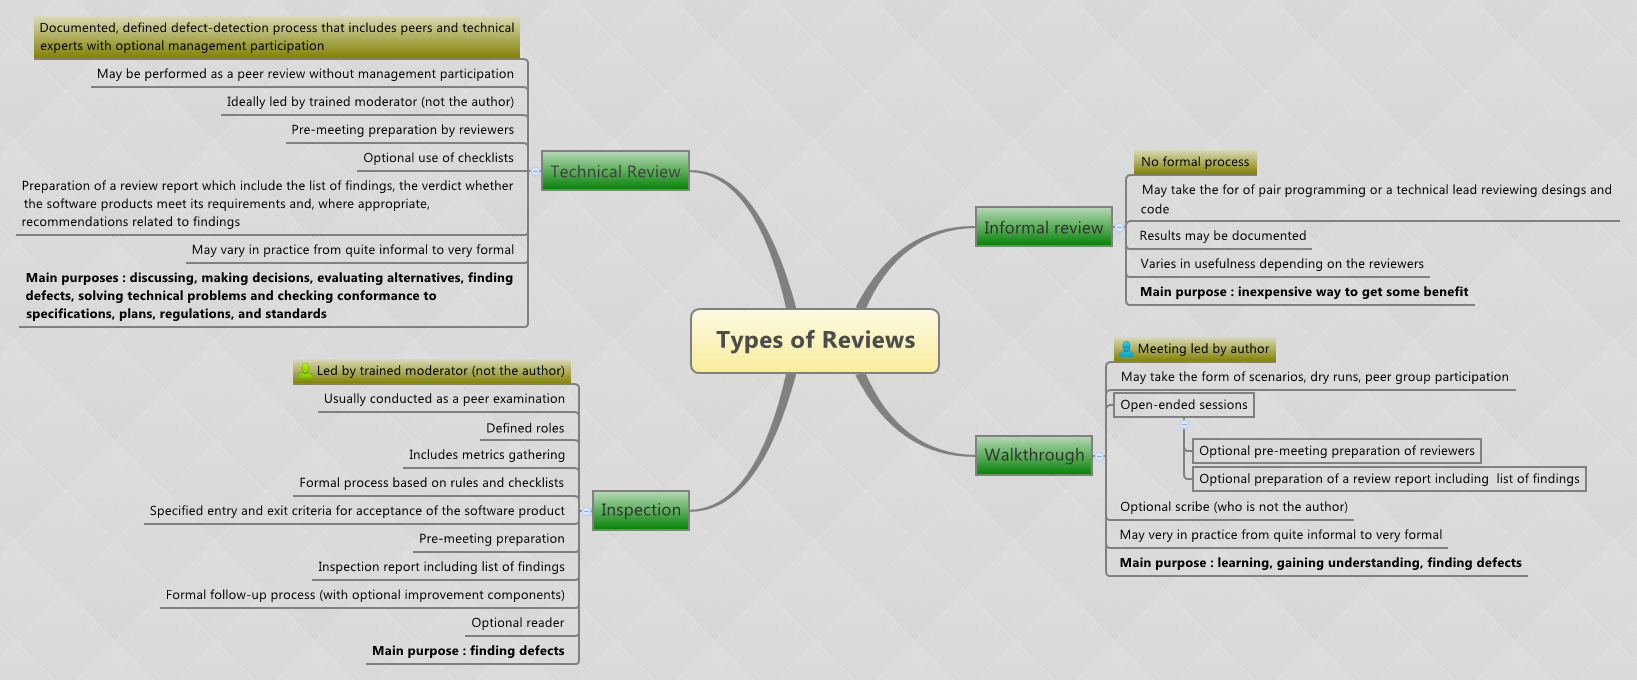 What are the types of review? - tryqa.com